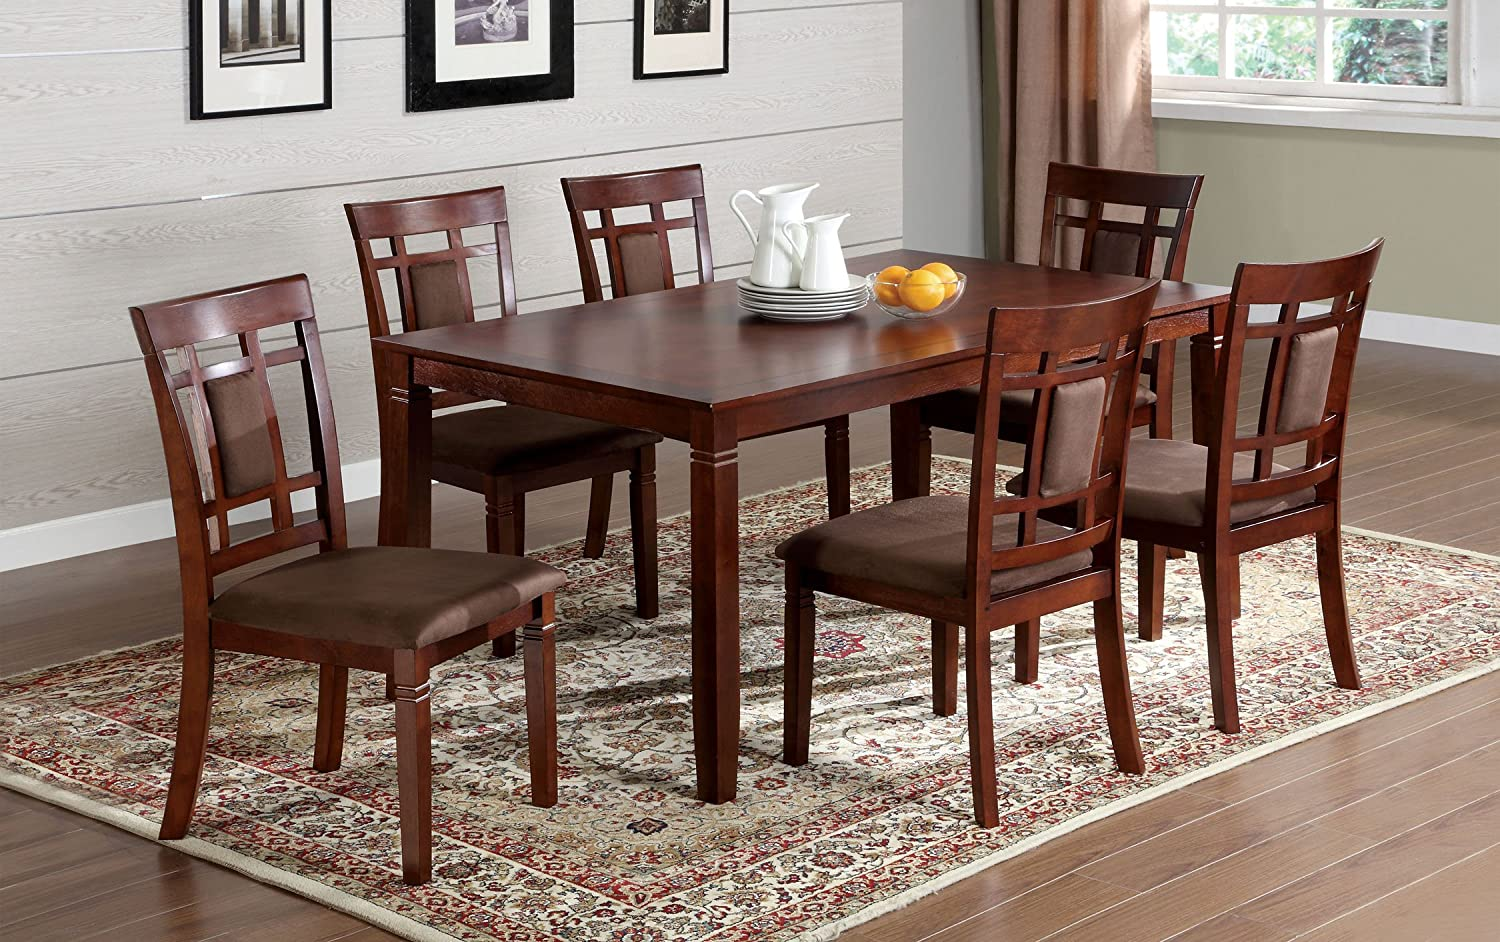 Amazon.com - Furniture of America Cartiere 7-Piece Dining Table ...